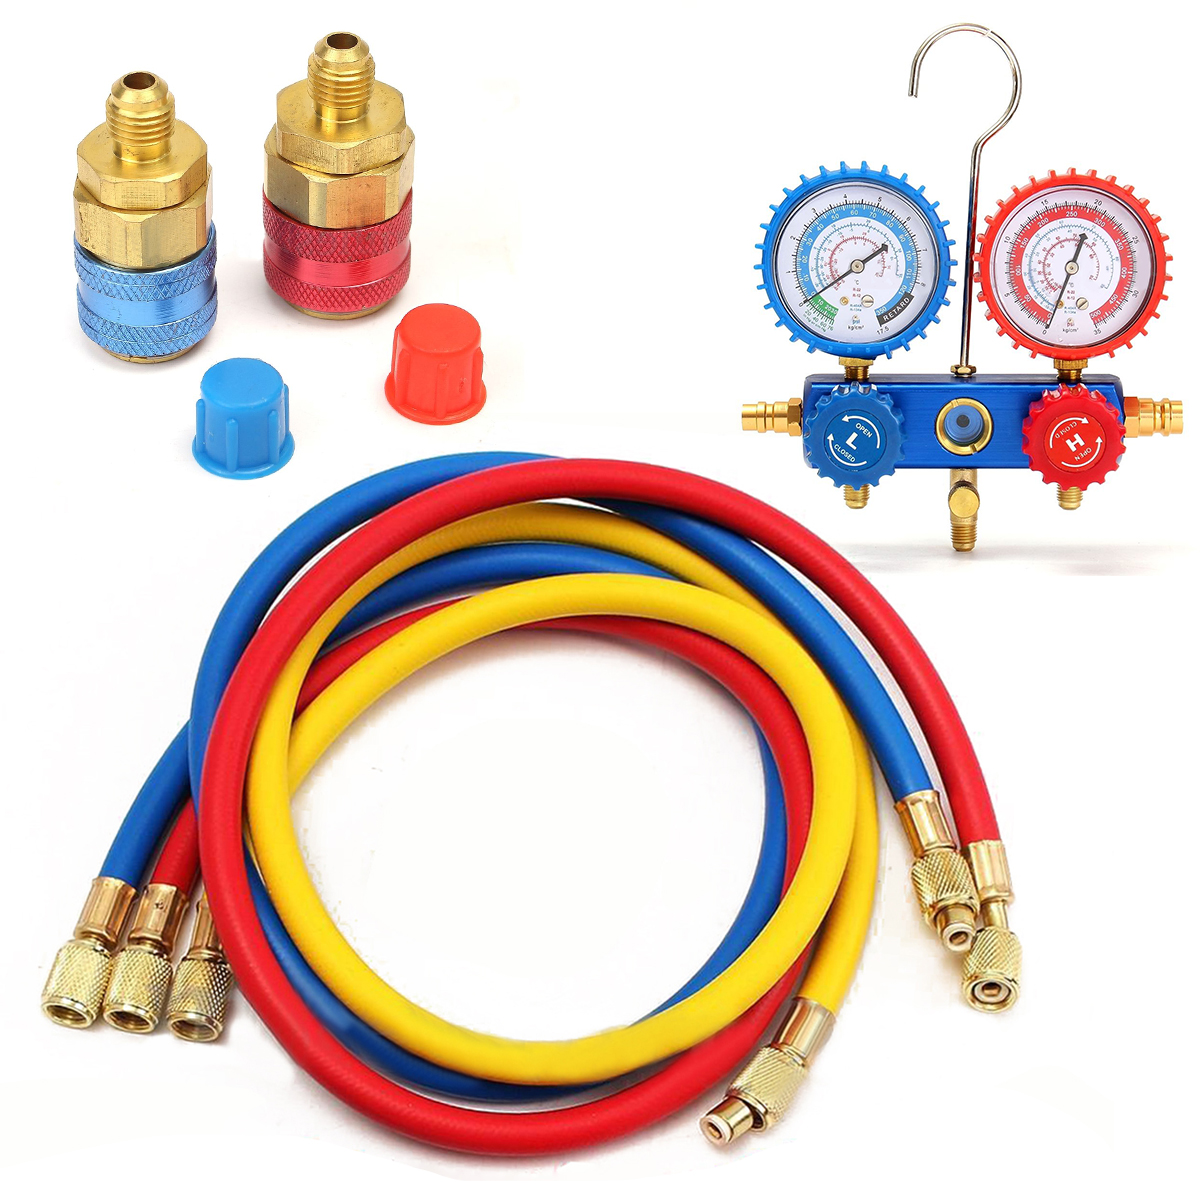 1 Set Car Manifold Gauge 1/4 SAE with 90cm Charging Hoses Kit Set For R134A Refrigerant Air Conditioning A/C System high quality automotive refrigeration air conditioning manifold gauge for r134a